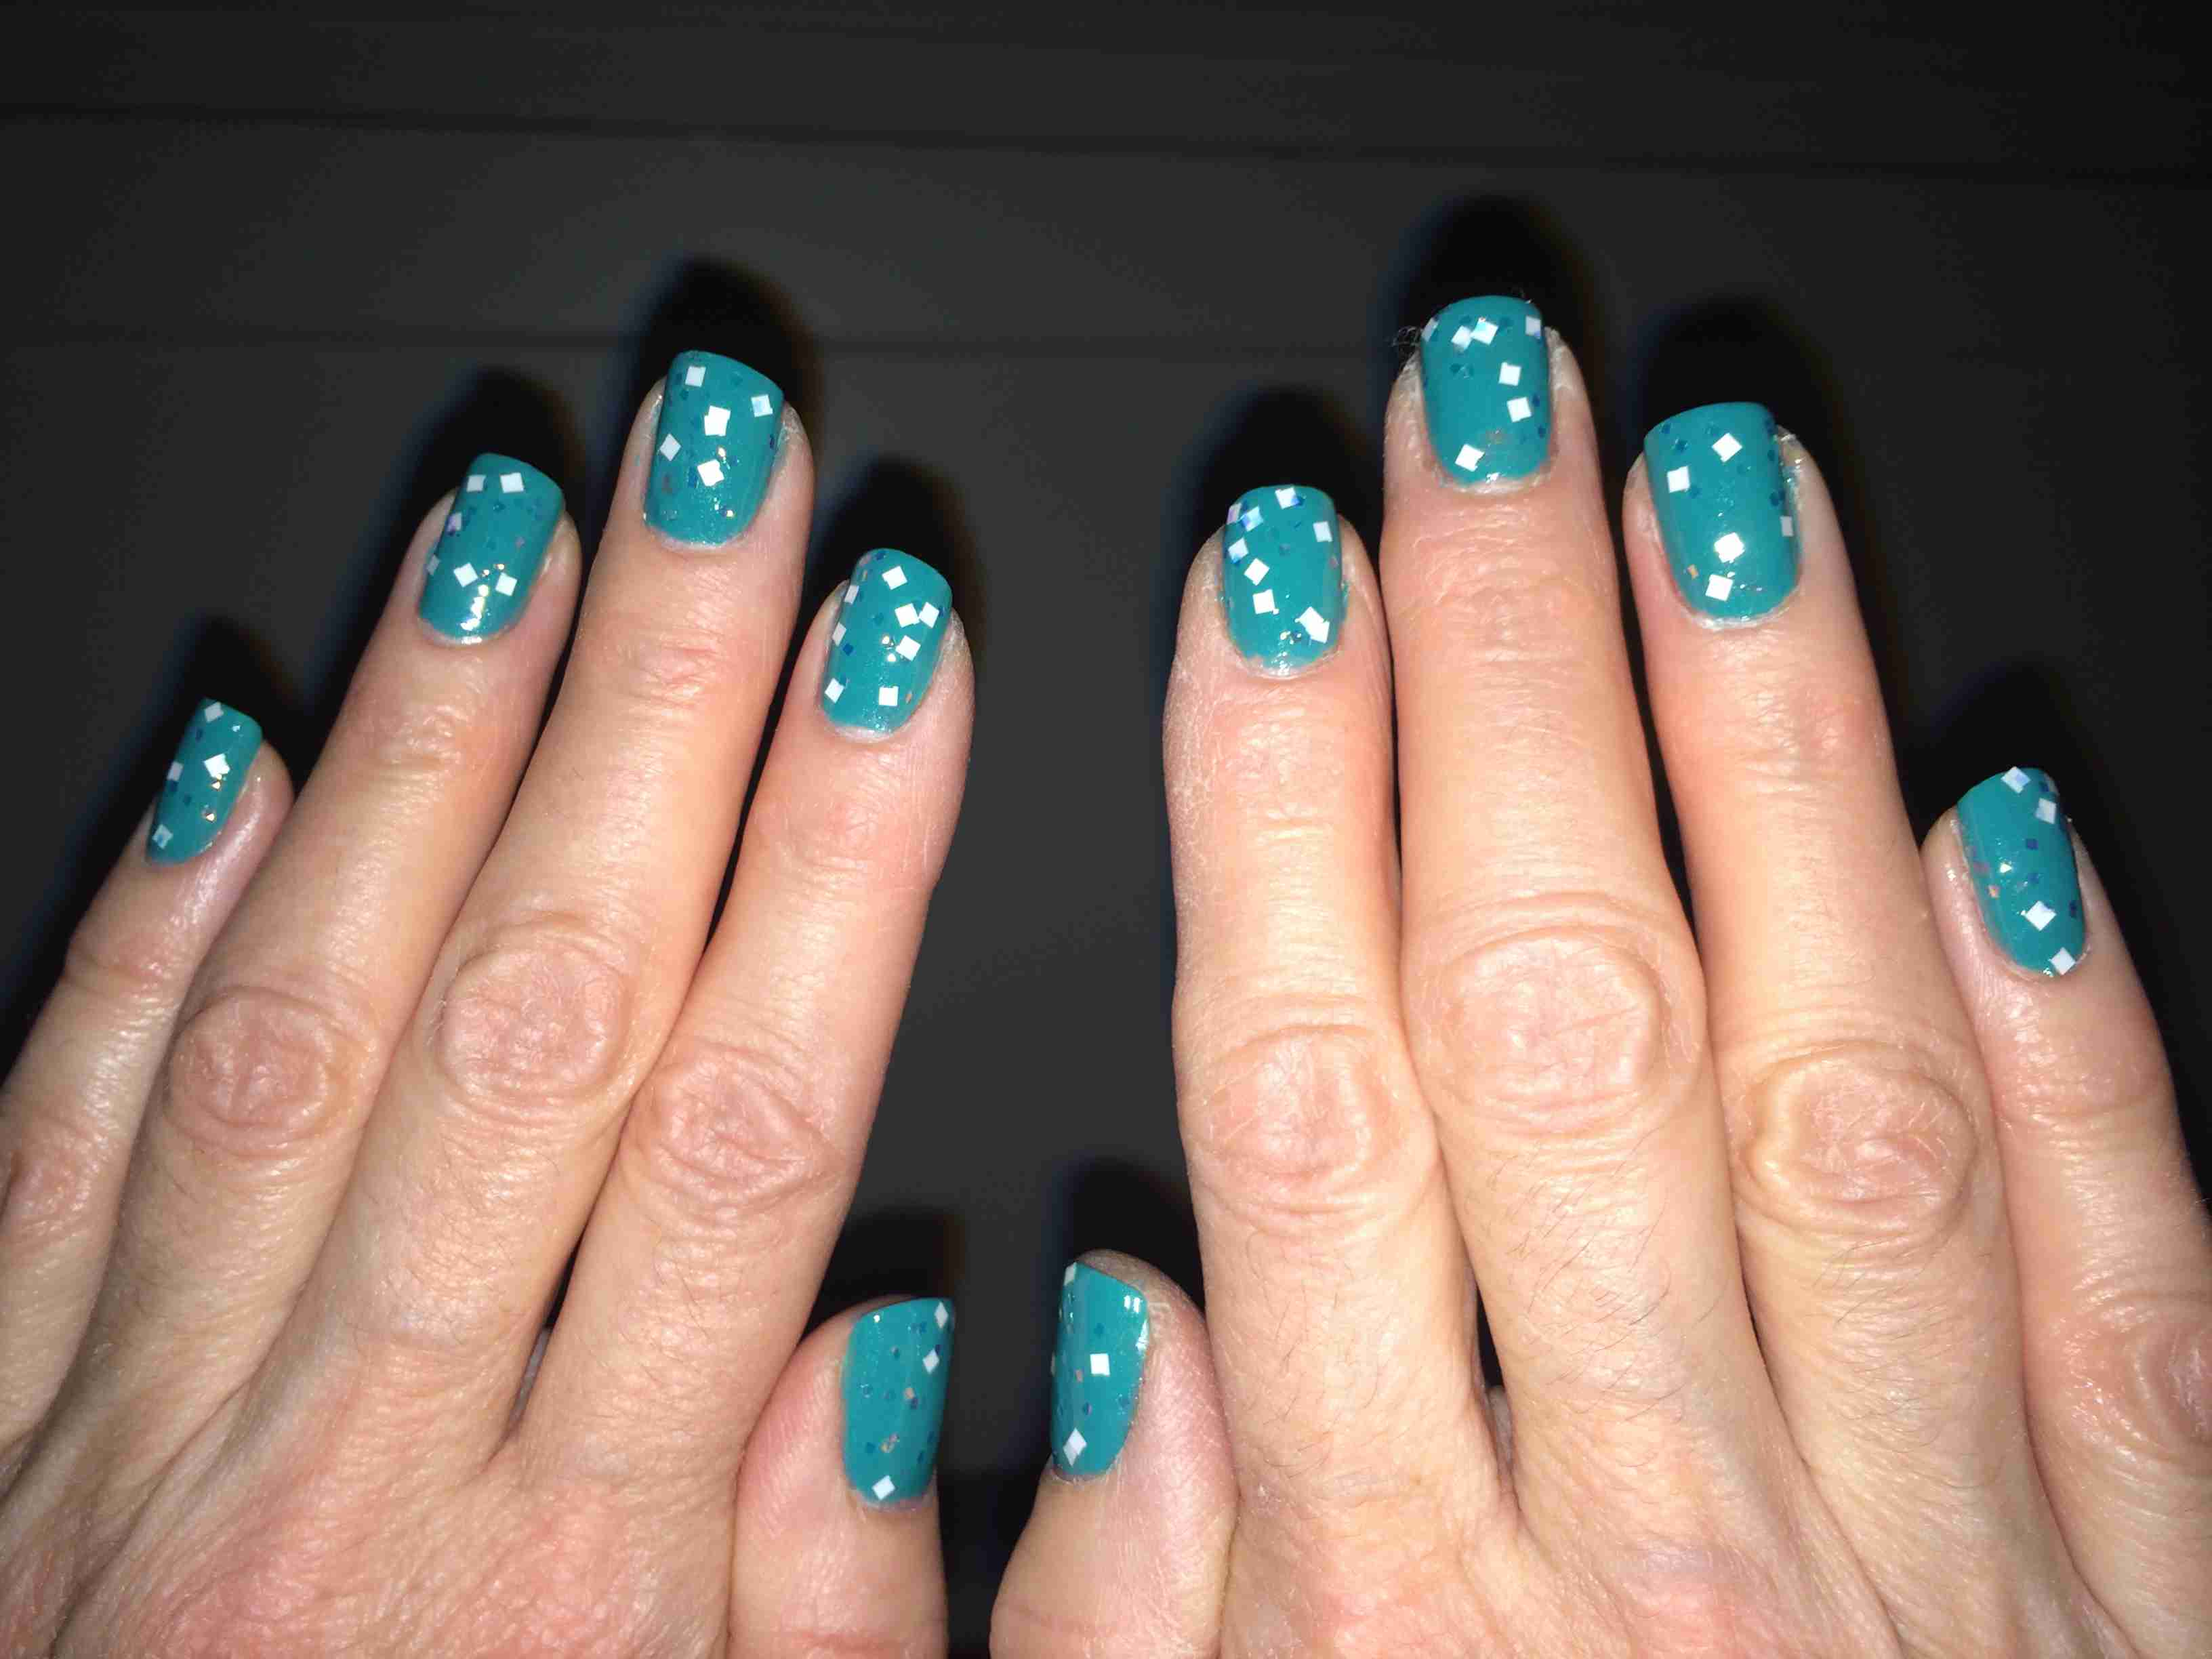 How to Make Glow in the Dark Nail Polish